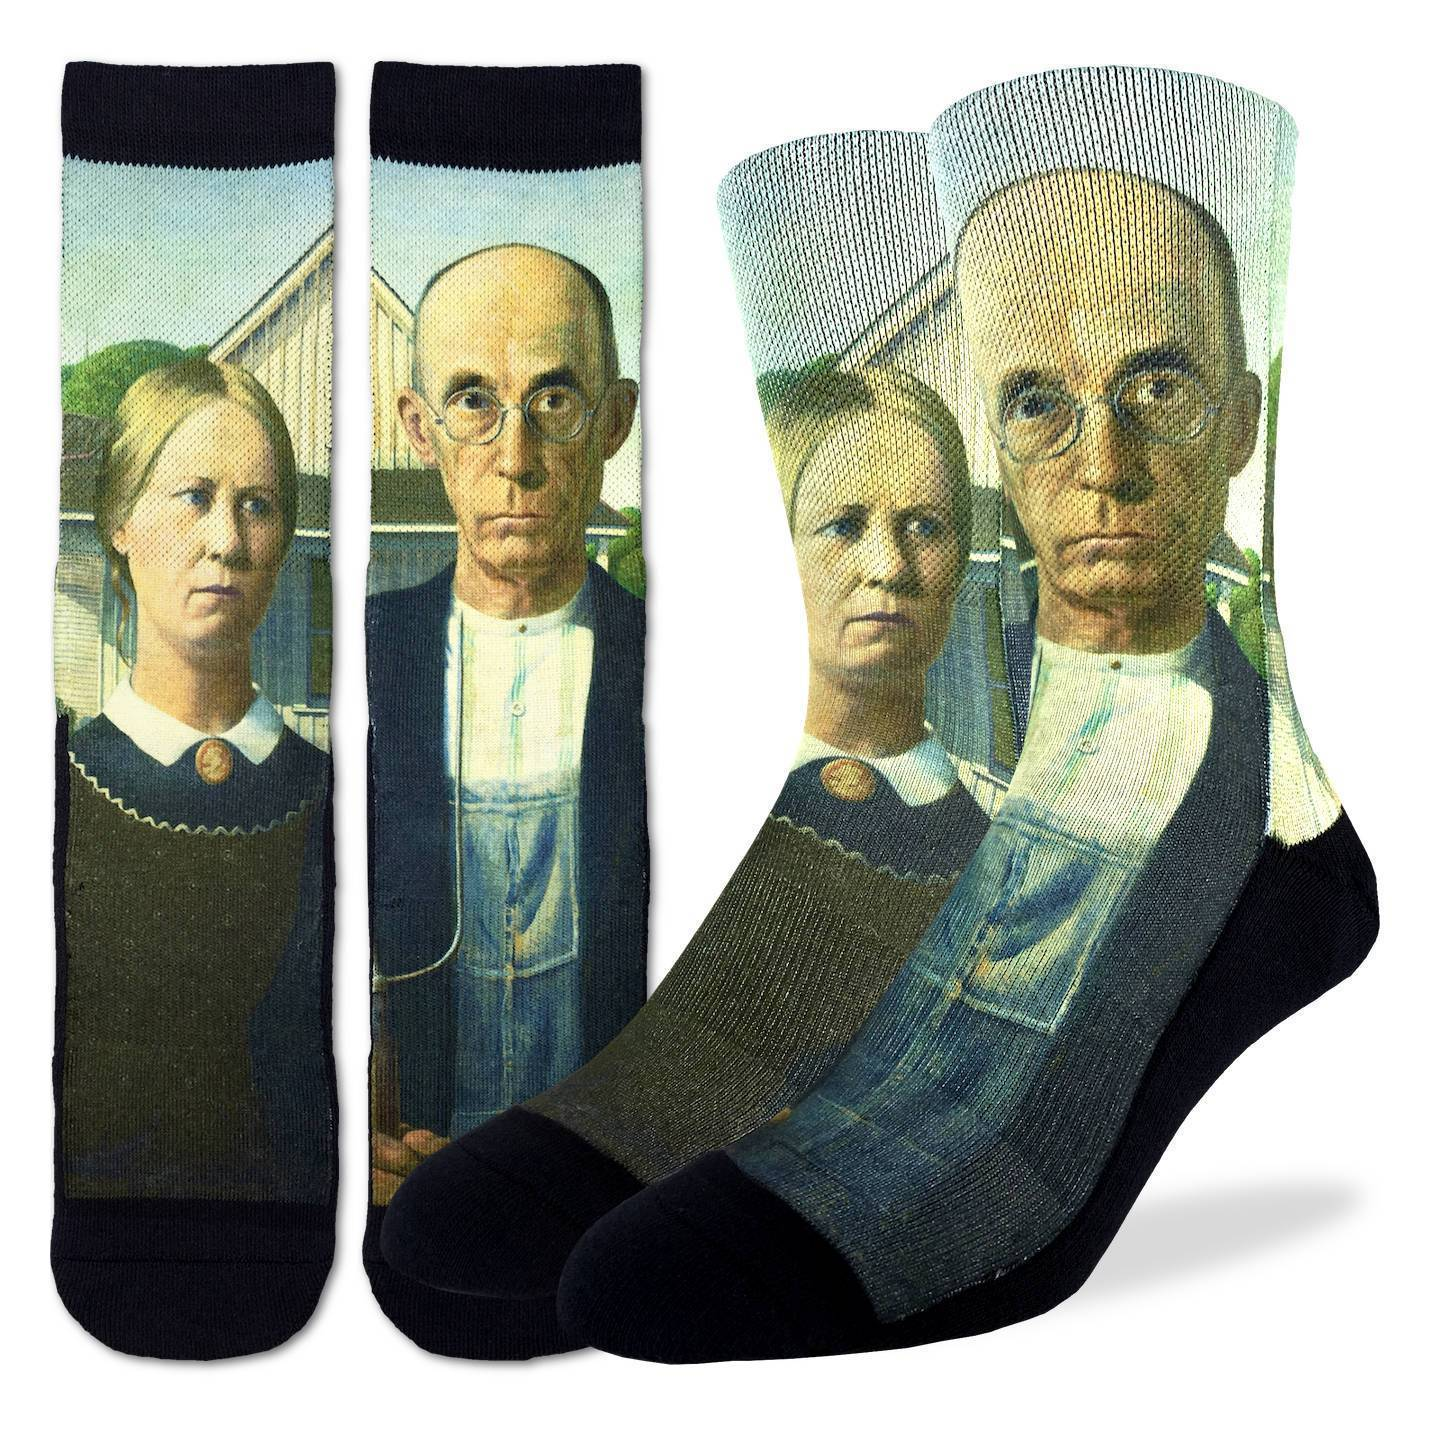 Men's American Gothic Socks - Good Luck Sock